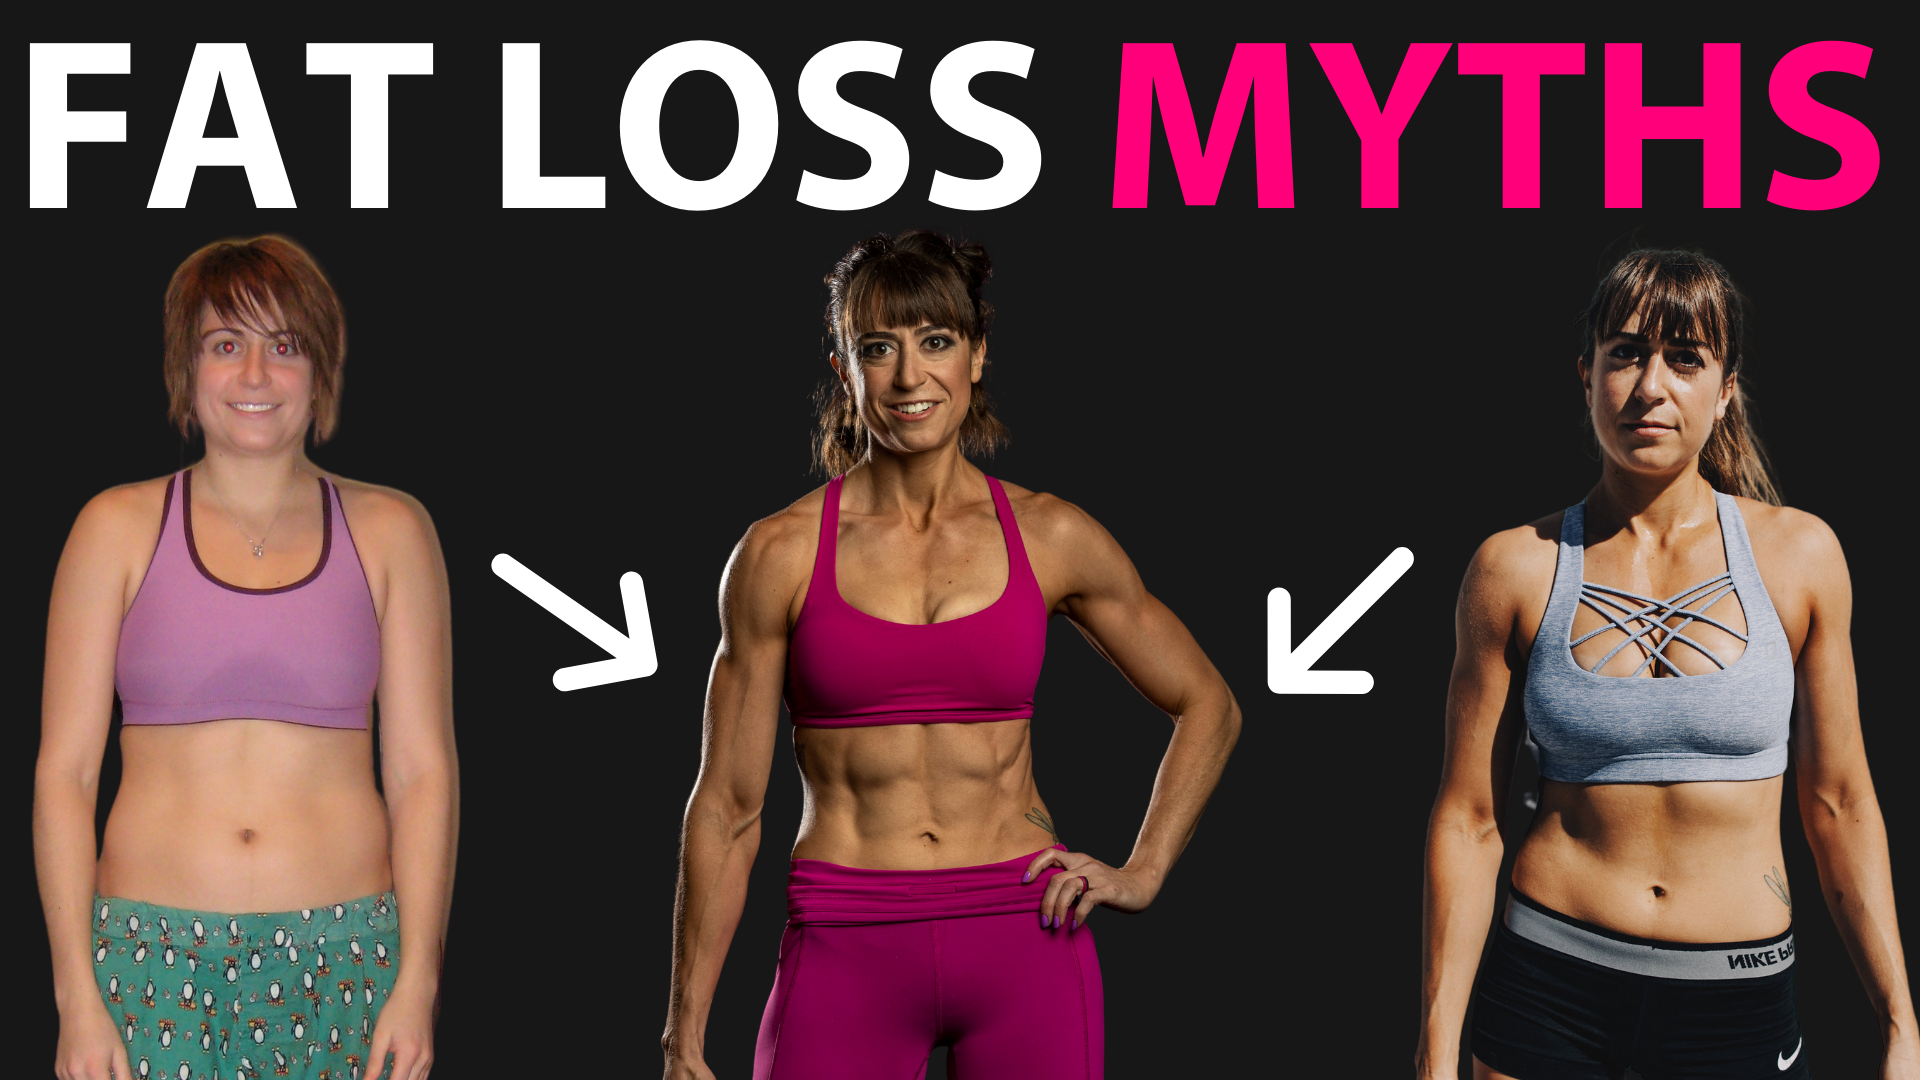 3 Fat Loss Myths Holding You Back